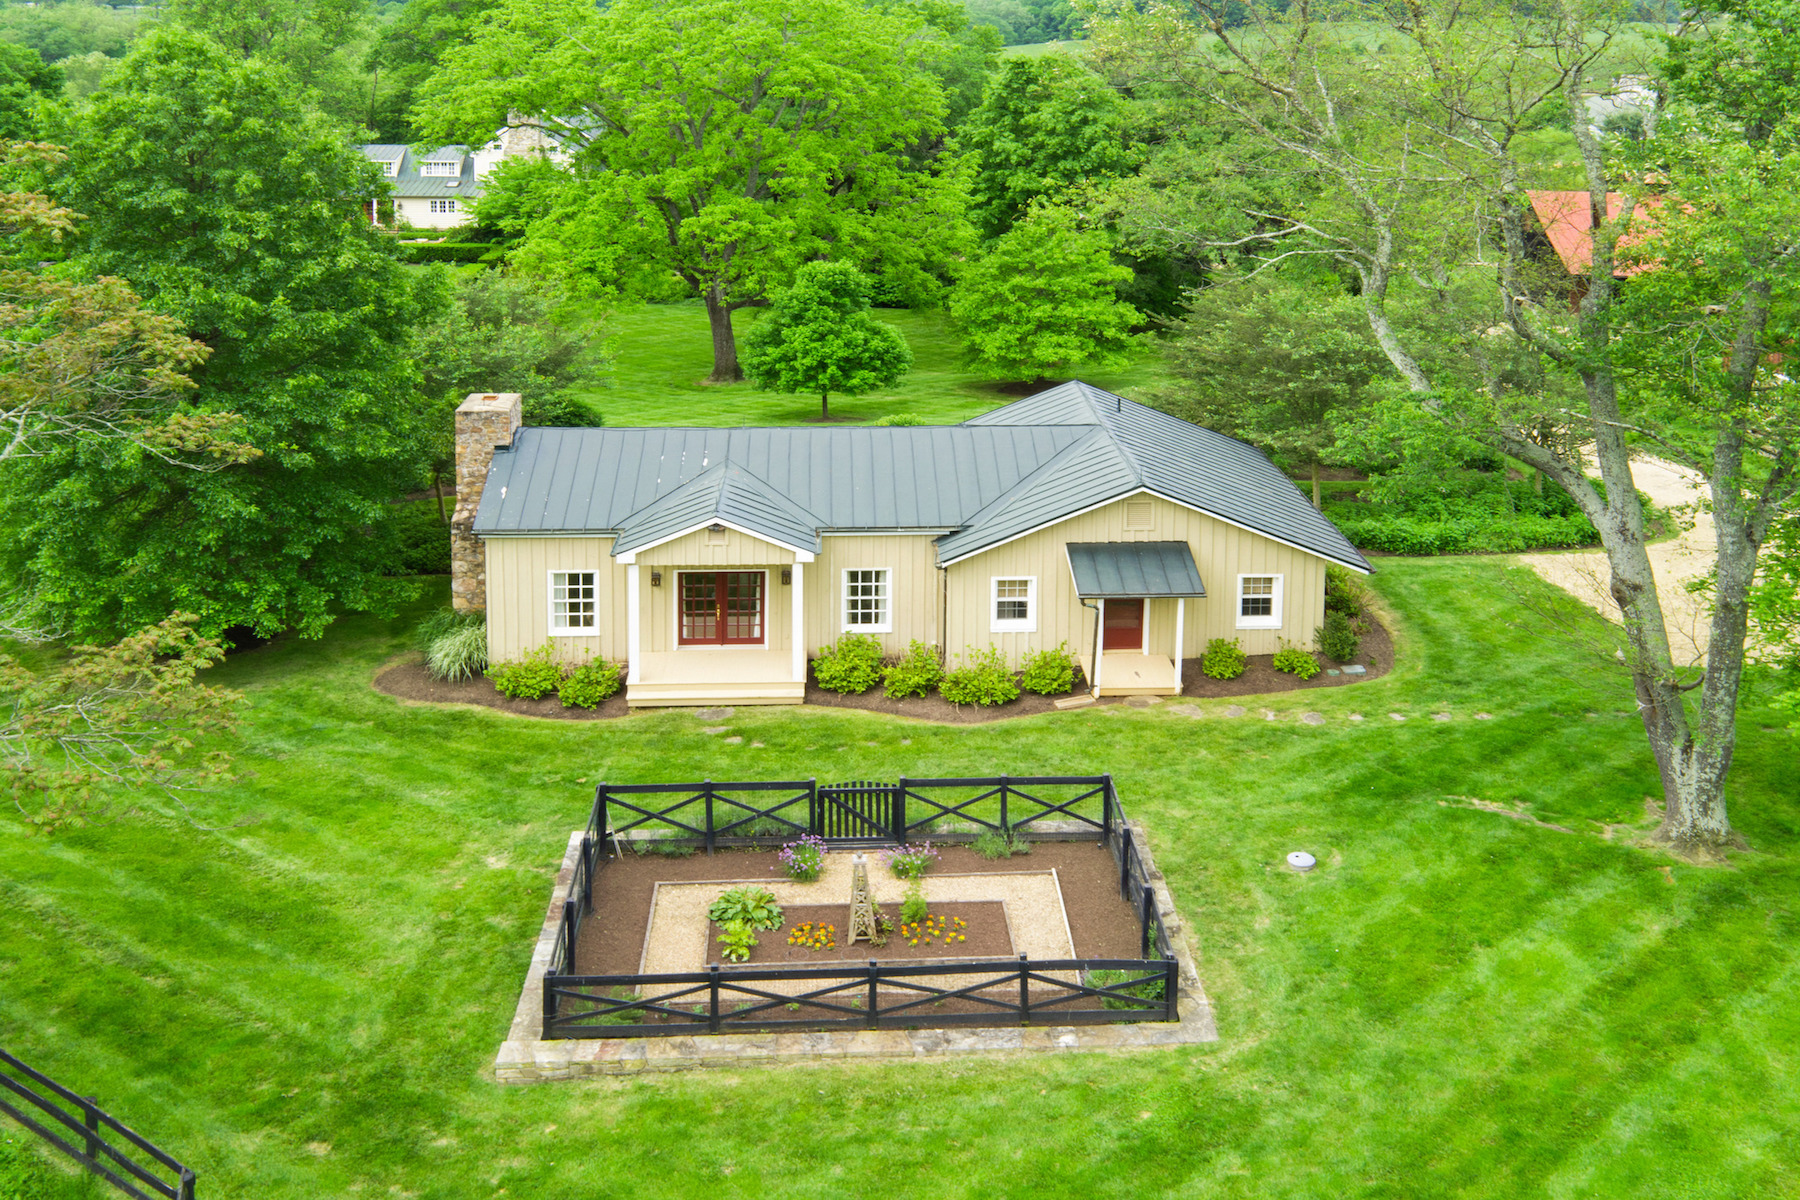 Additional photo for property listing at Orlean House 6781 John Barton Payne Rd Marshall, Virginia 20115 United States